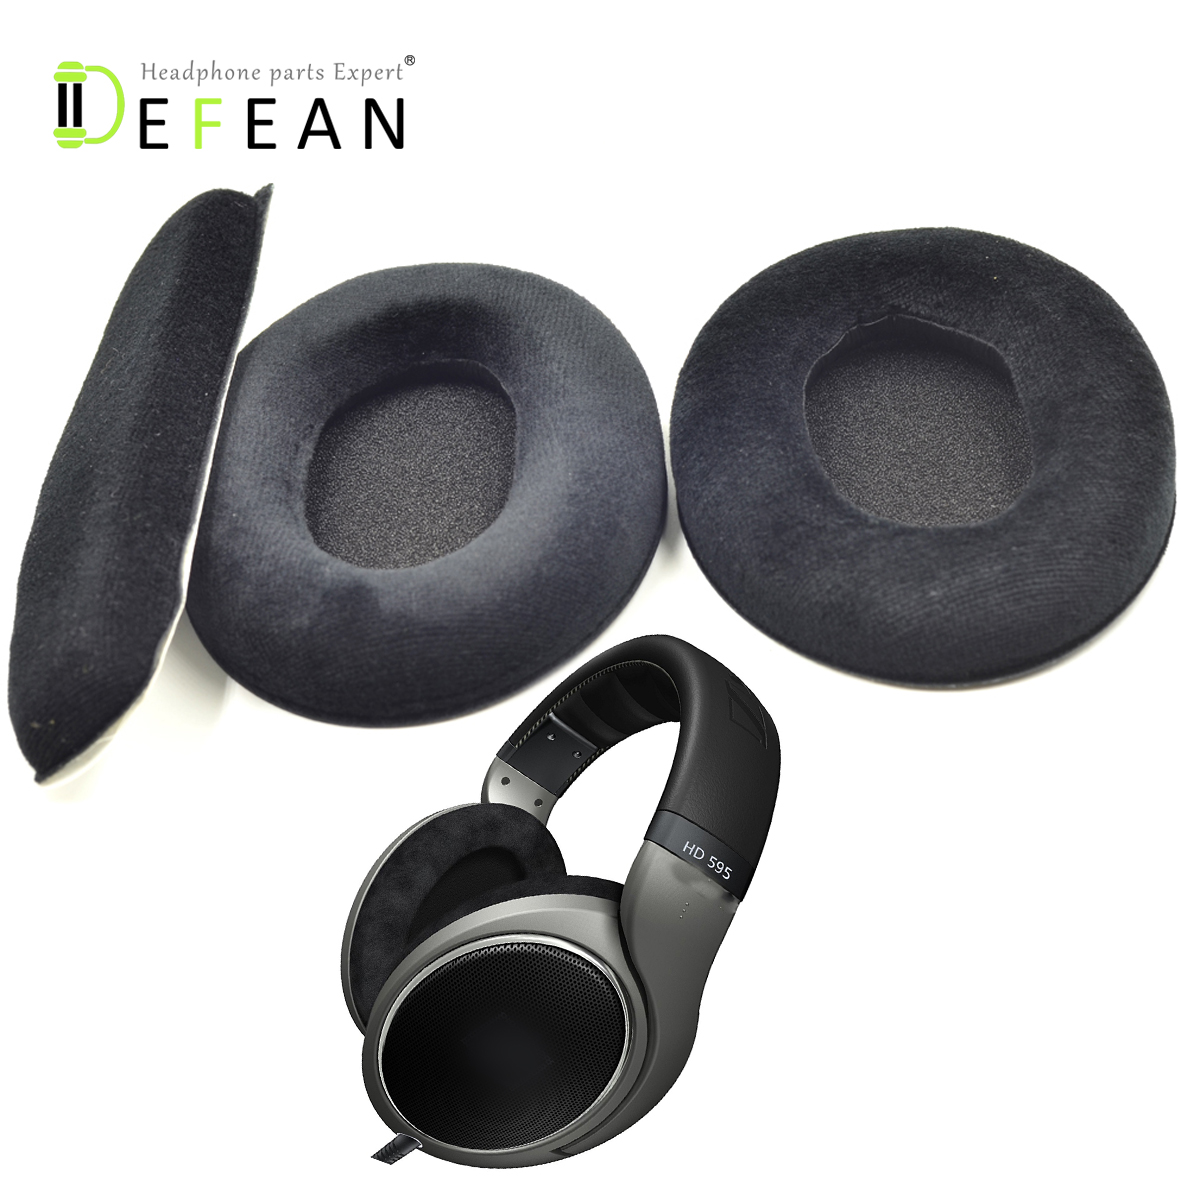 Portable Audio & Video Earpad Ear Pad Earphone Soft Foam Cushion Headband Cover Head Band Replacement For Sennheiser Hd202 Hd212 Hd437 Hd447 Hd457 Hd47 Earphone Accessories